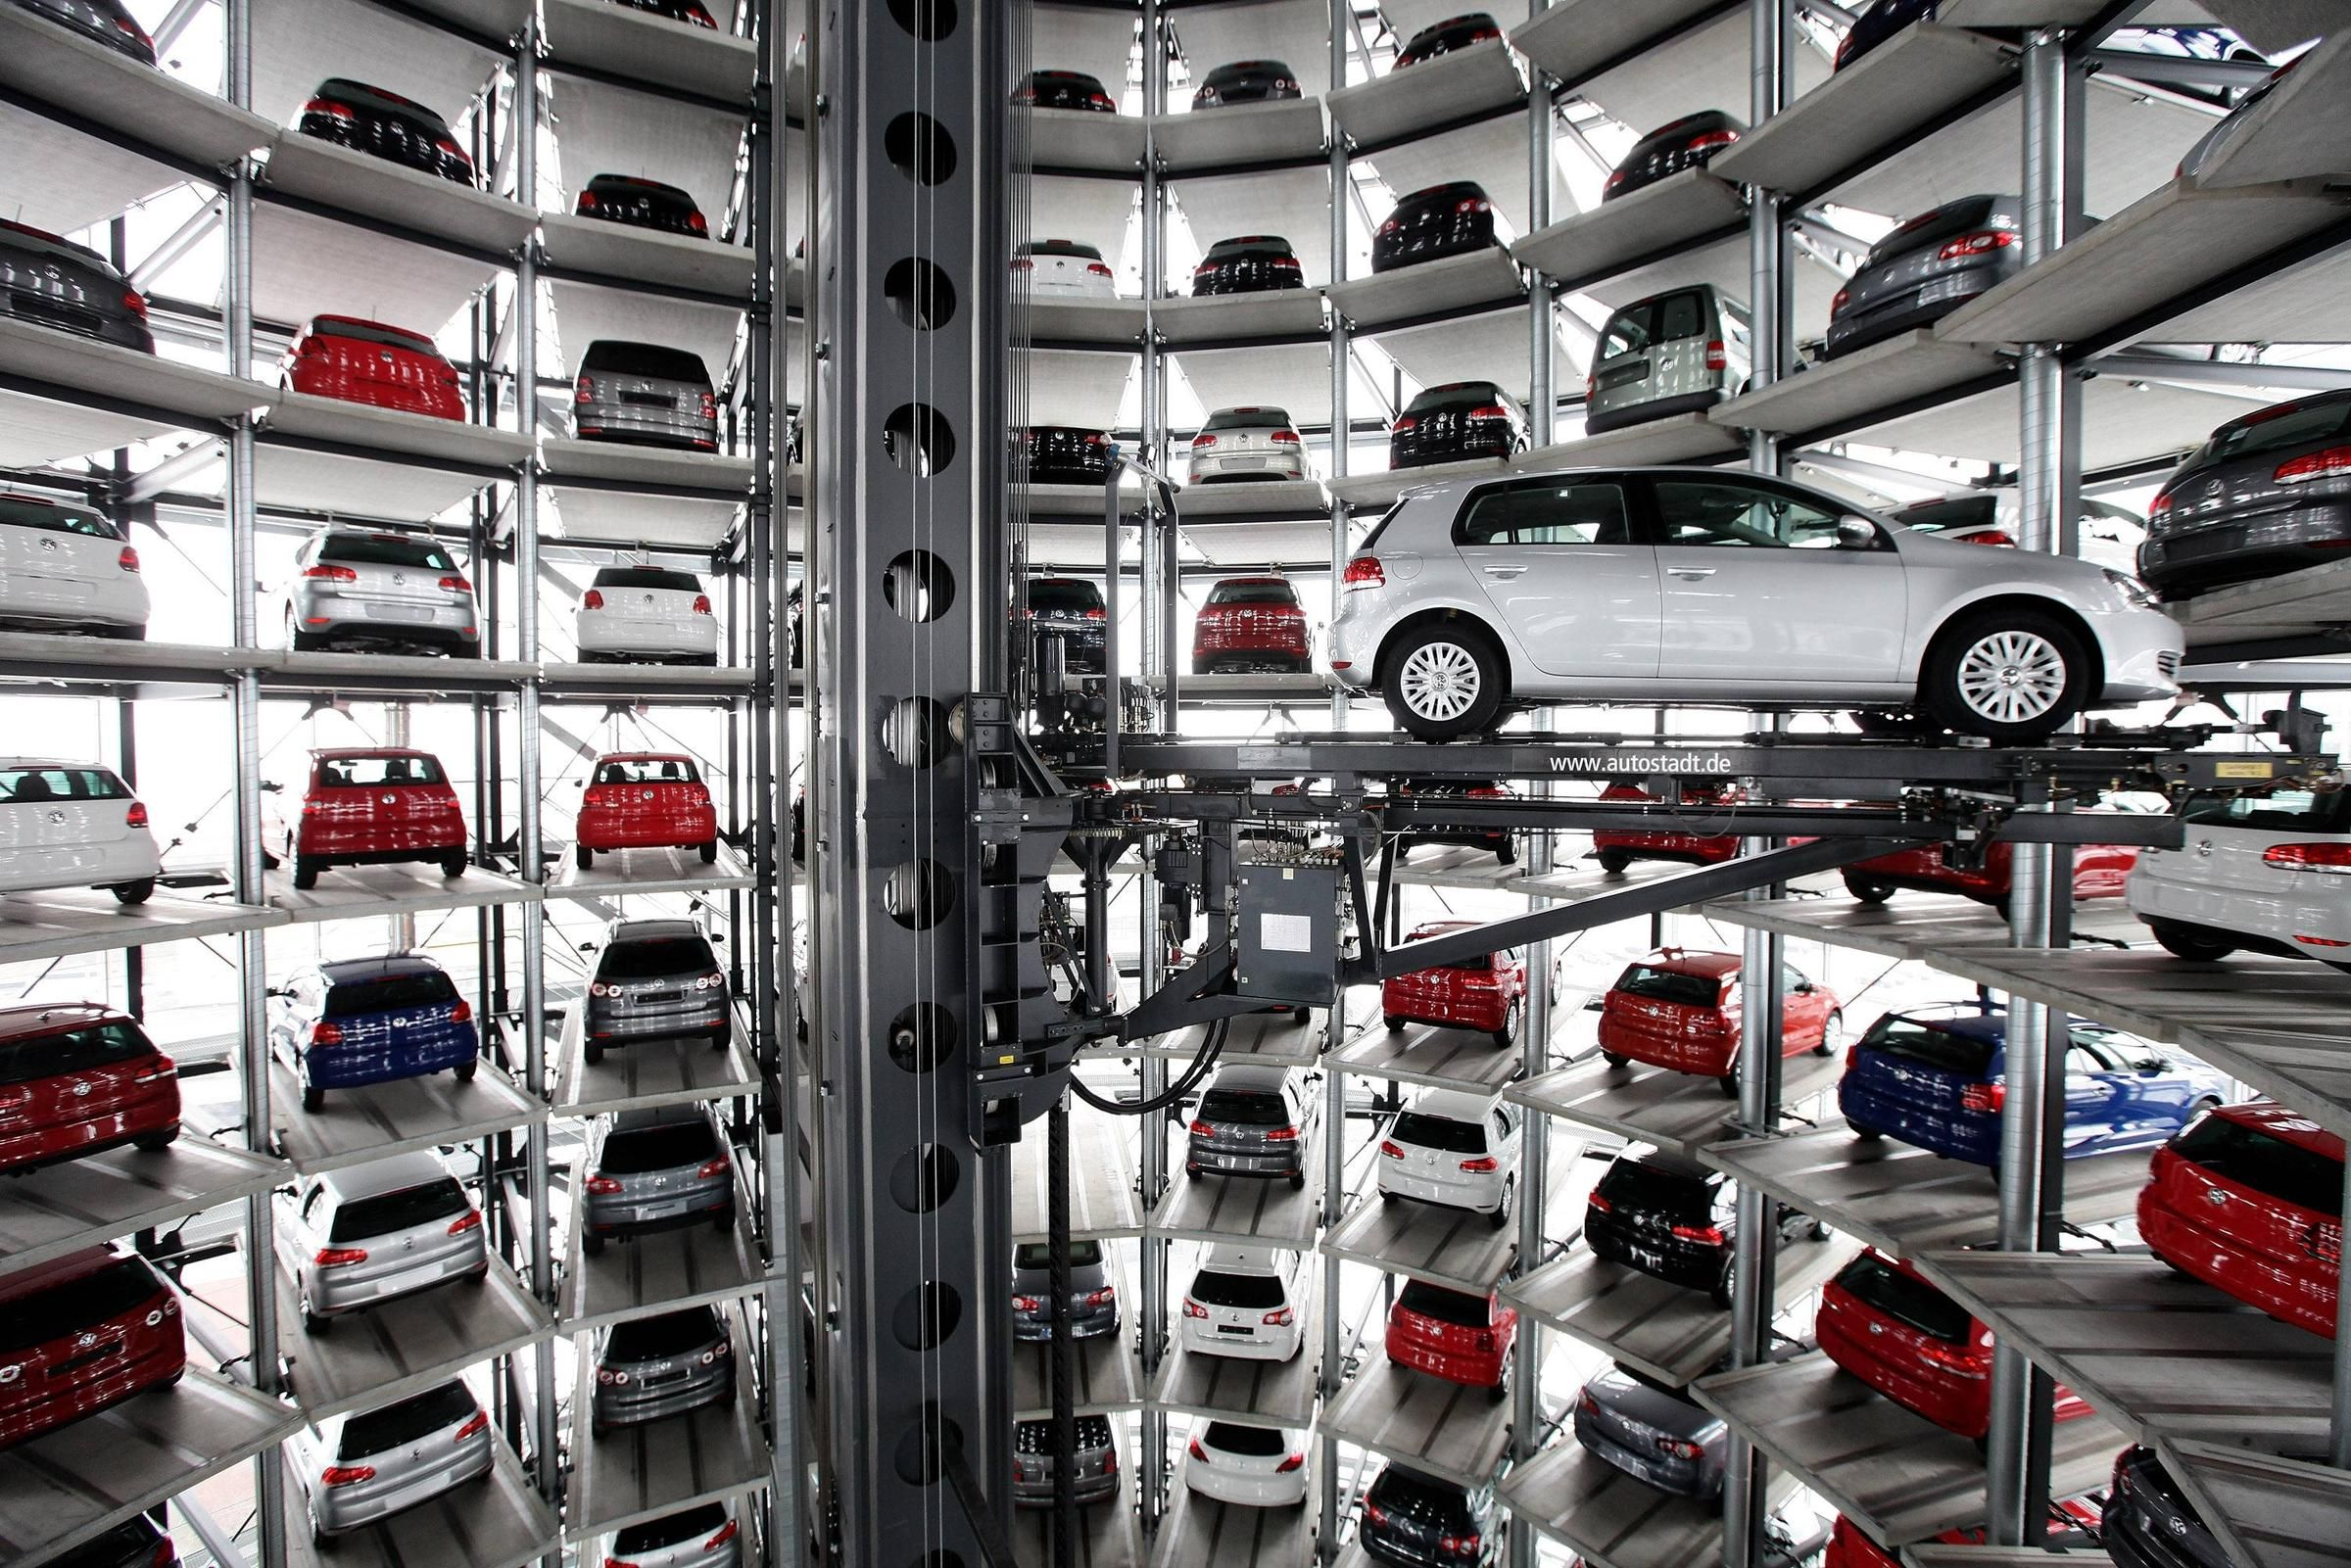 Top 10 Coolest Car Garages in the World